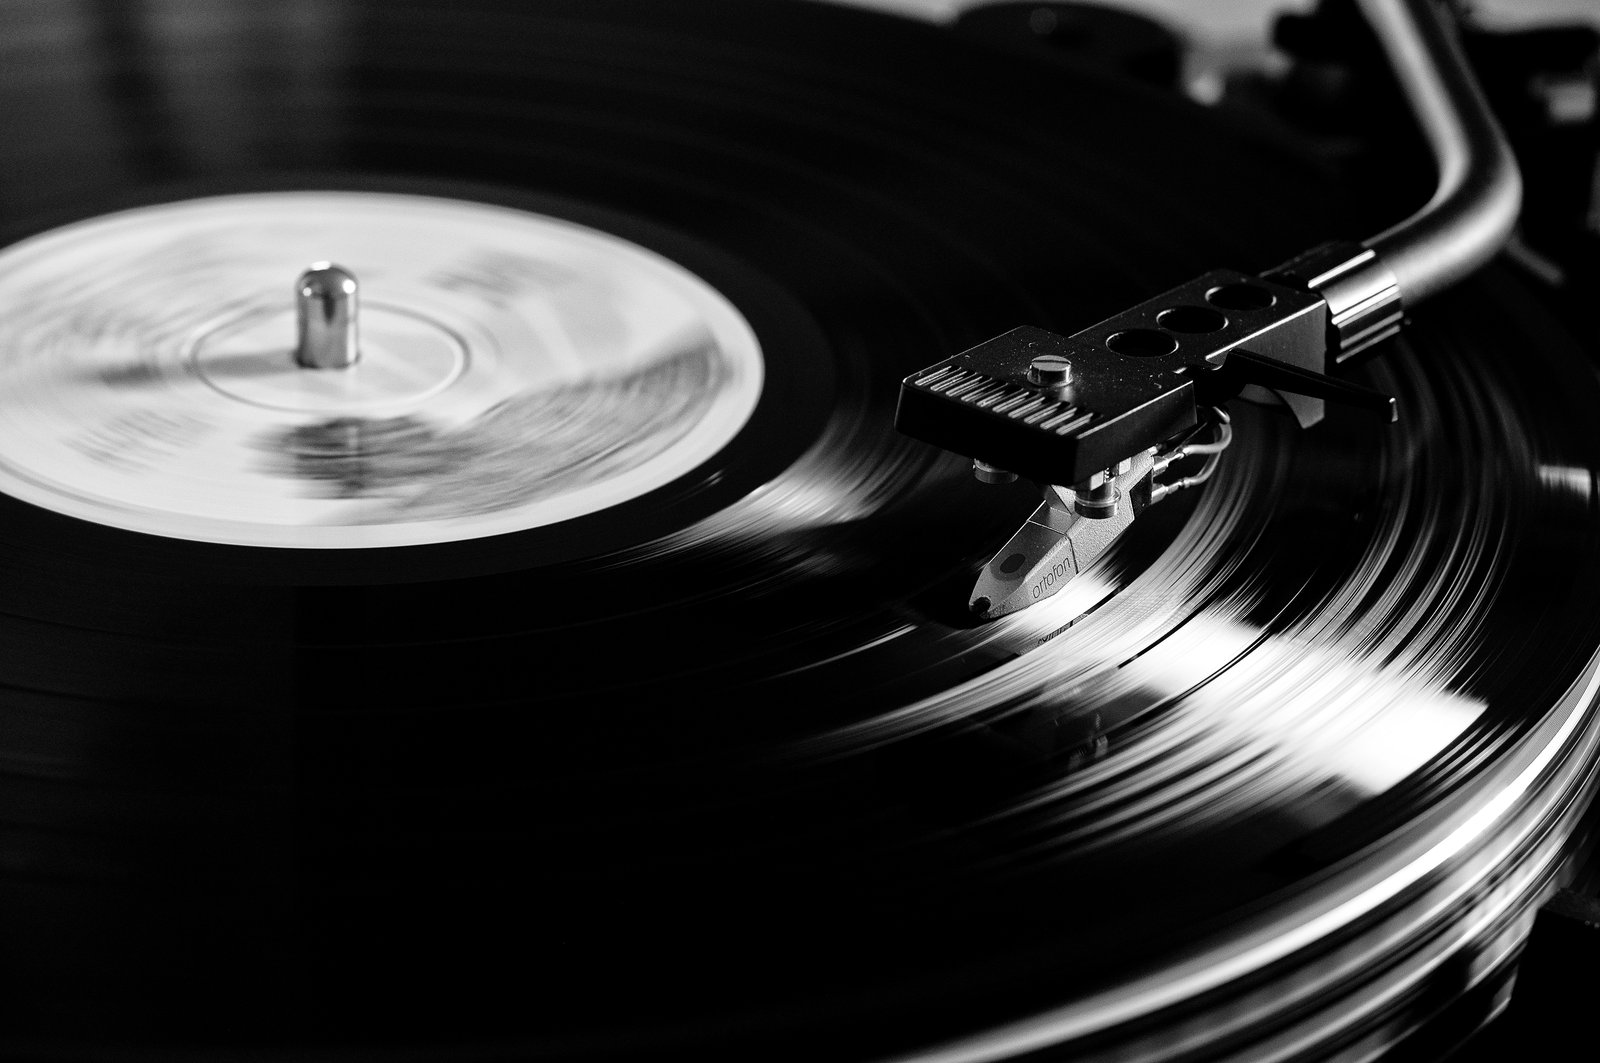 In 2015, Vinyl Earned More Than YouTube Music, VEVO, SoundCloud, and Free Spotify COMBINED